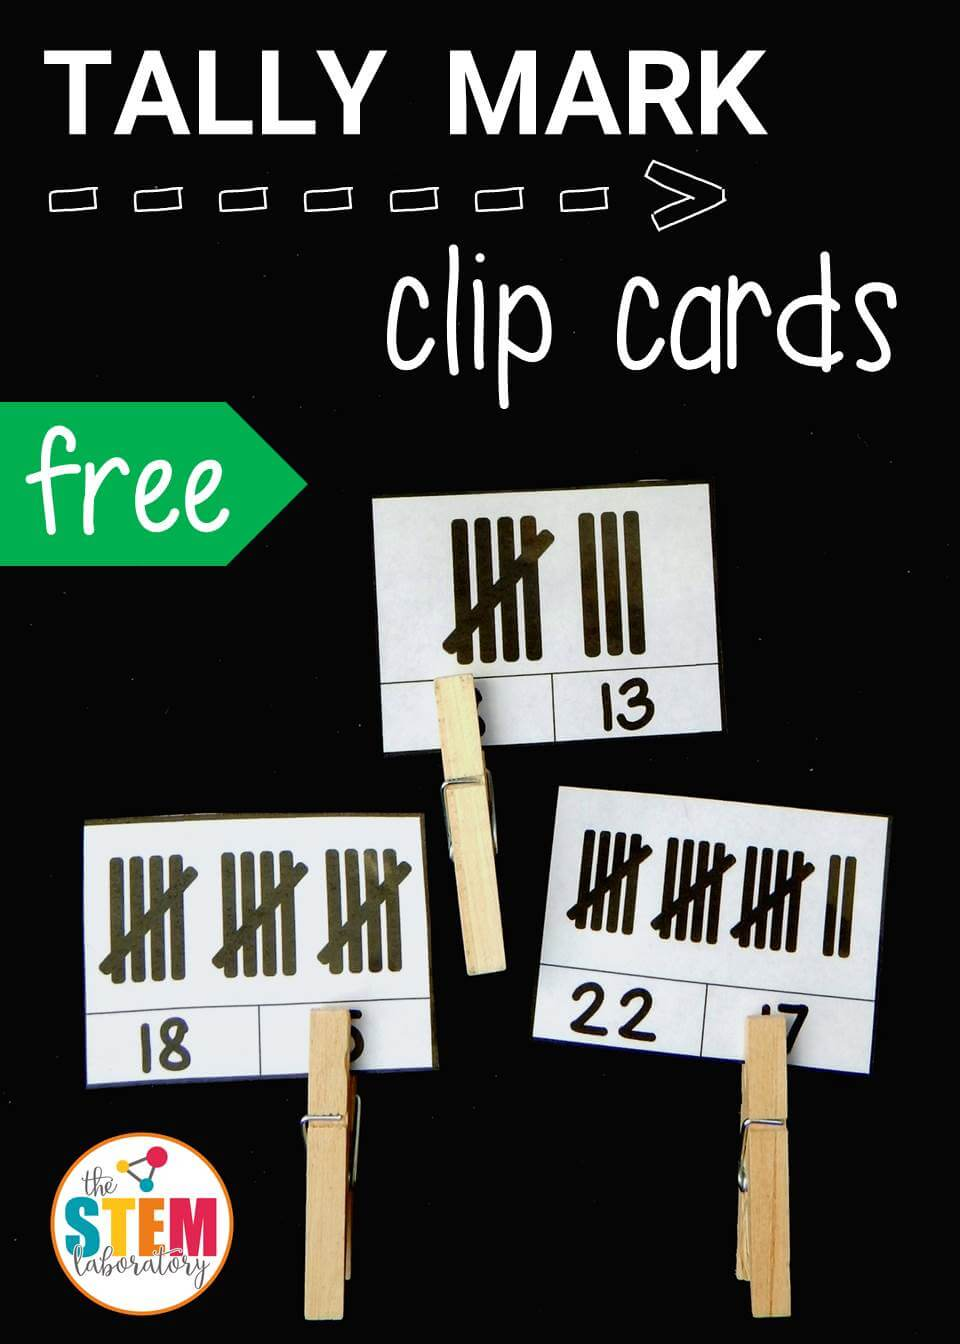 Tally Mark Clip Cards The Stem Laboratory